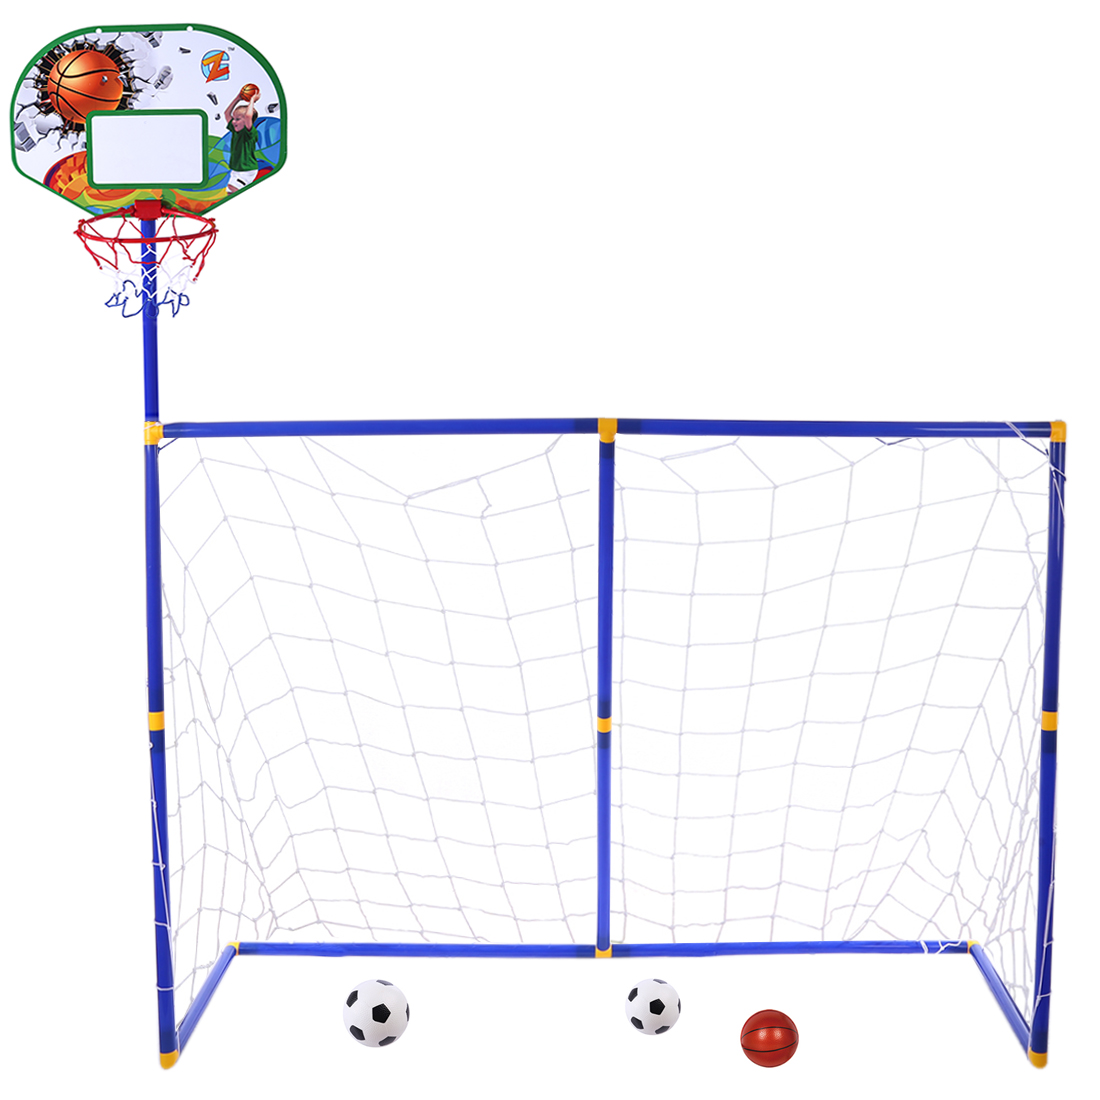 Rowsfire 3 in 1 Children Sports Equipment Football Goal Basketball Stands for Kids Outdoor Toy ZG270 16